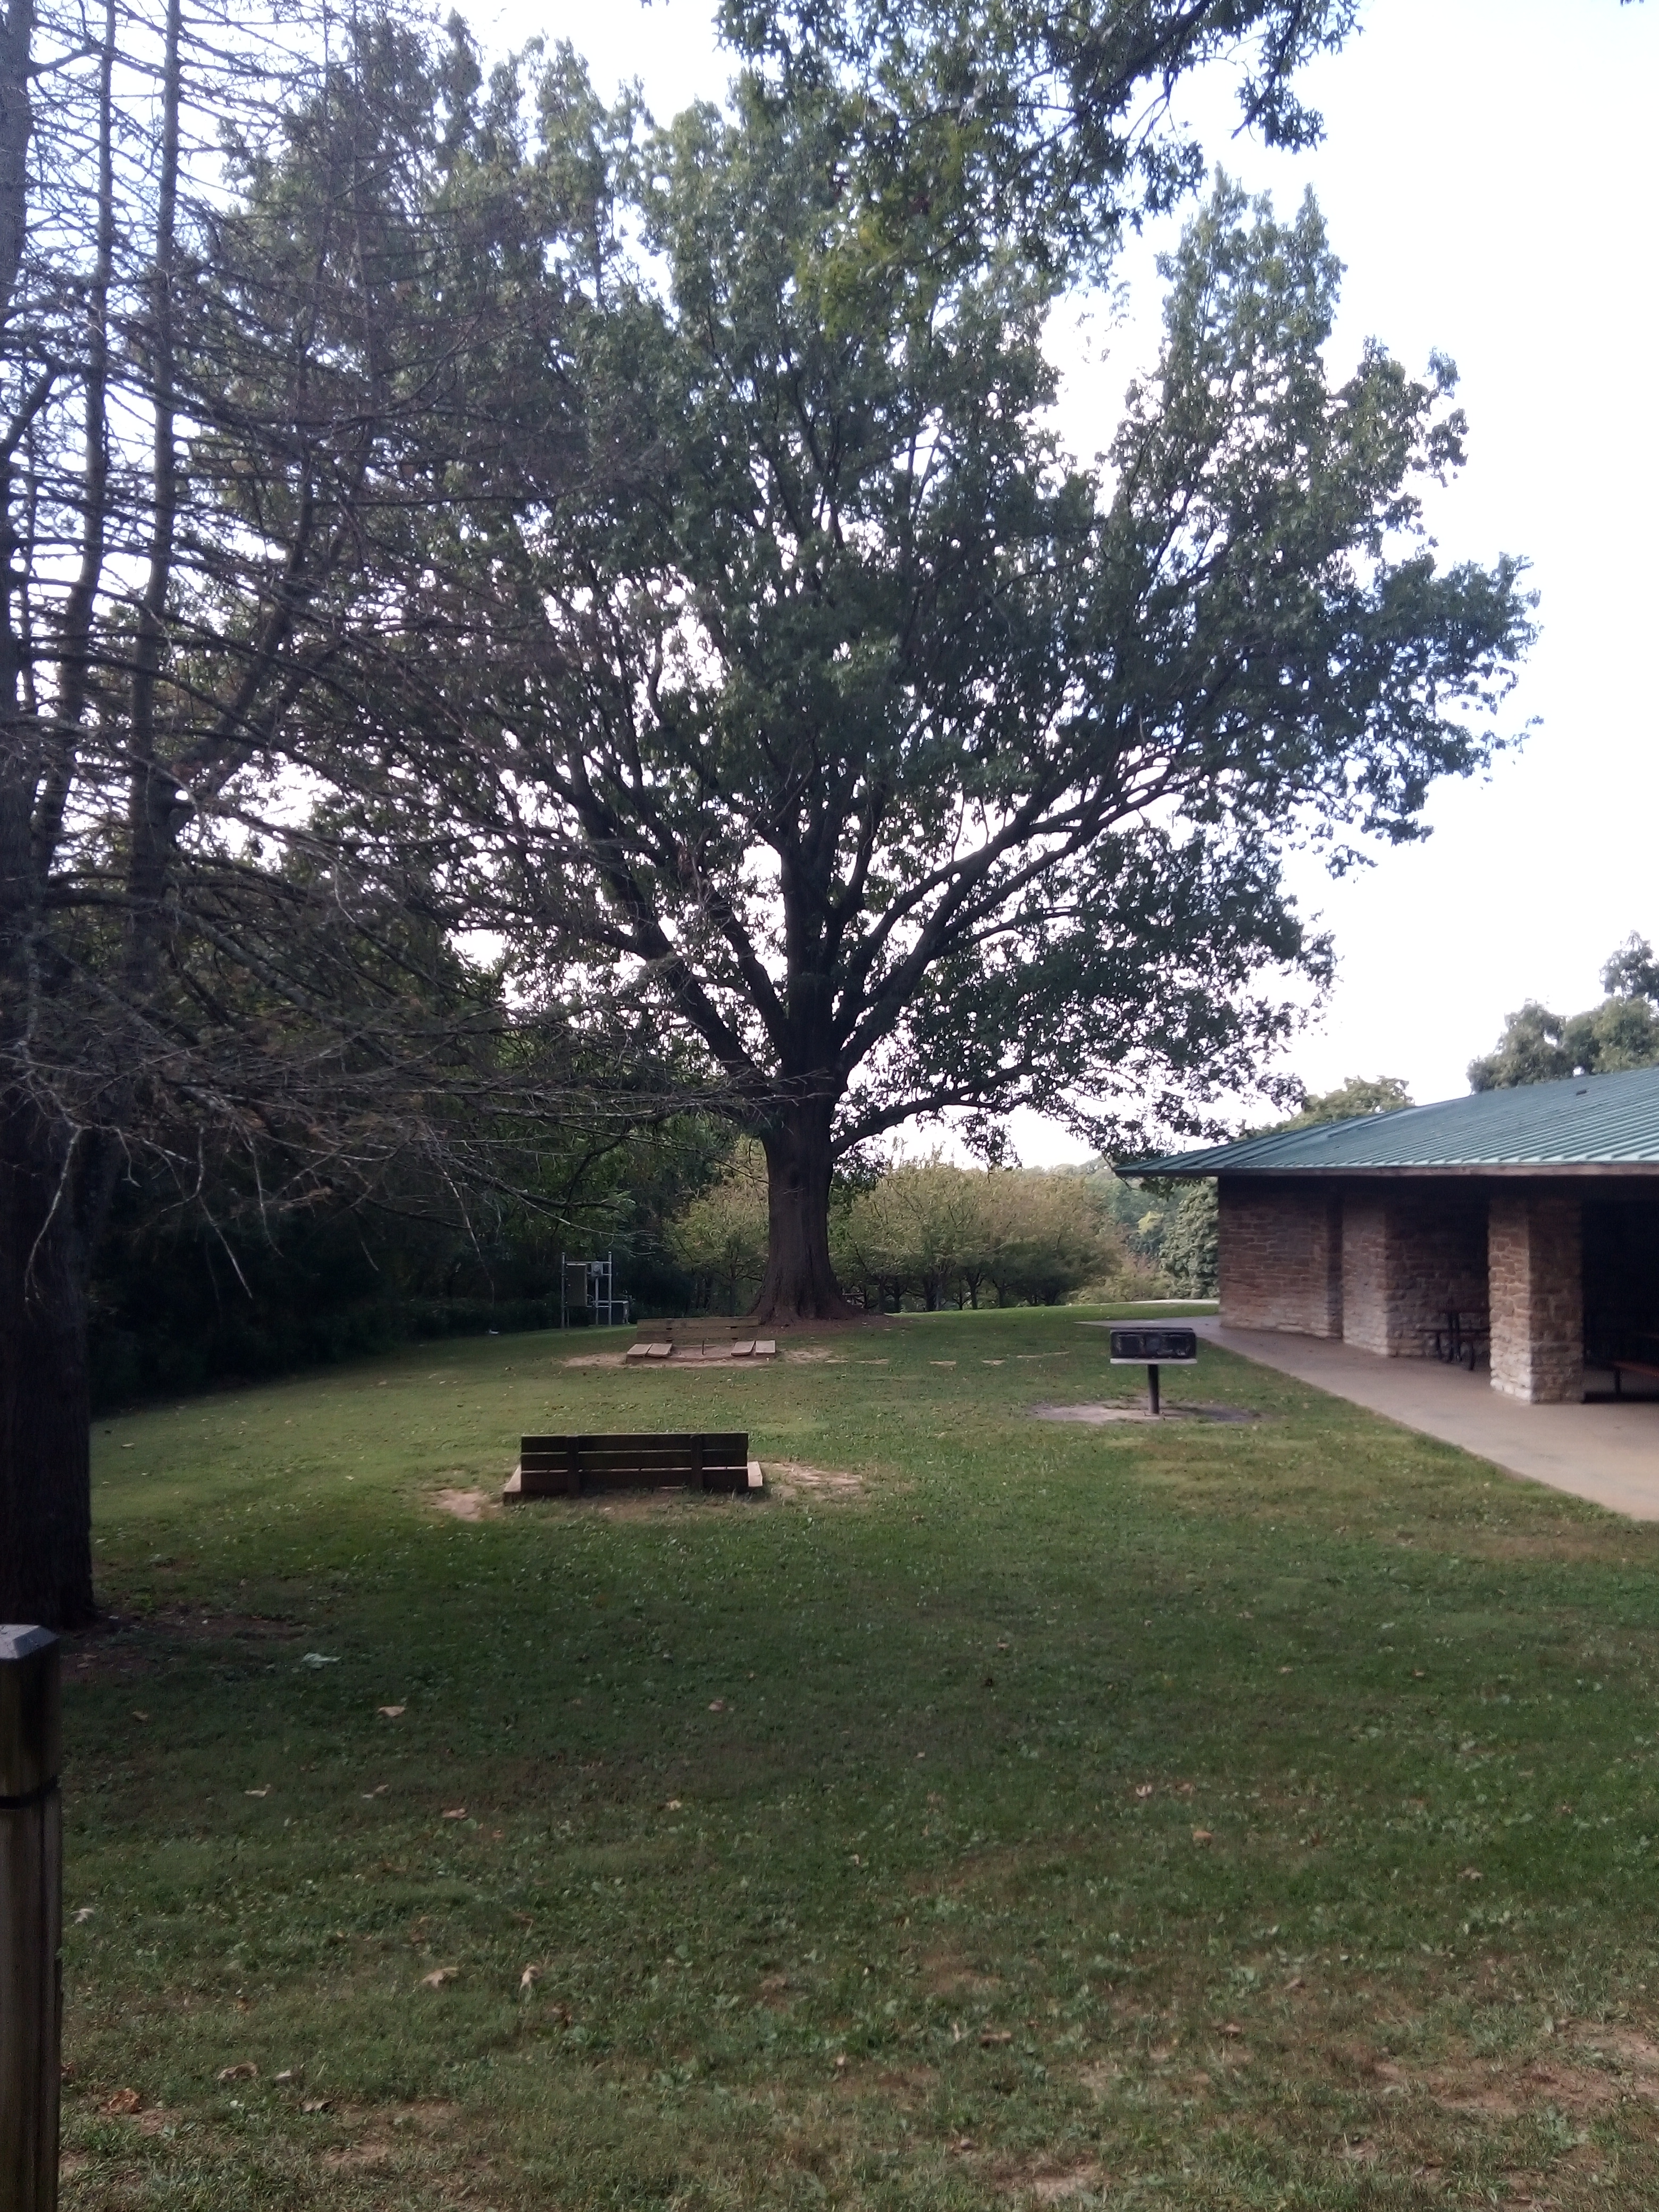 Picnic shelter in French Park